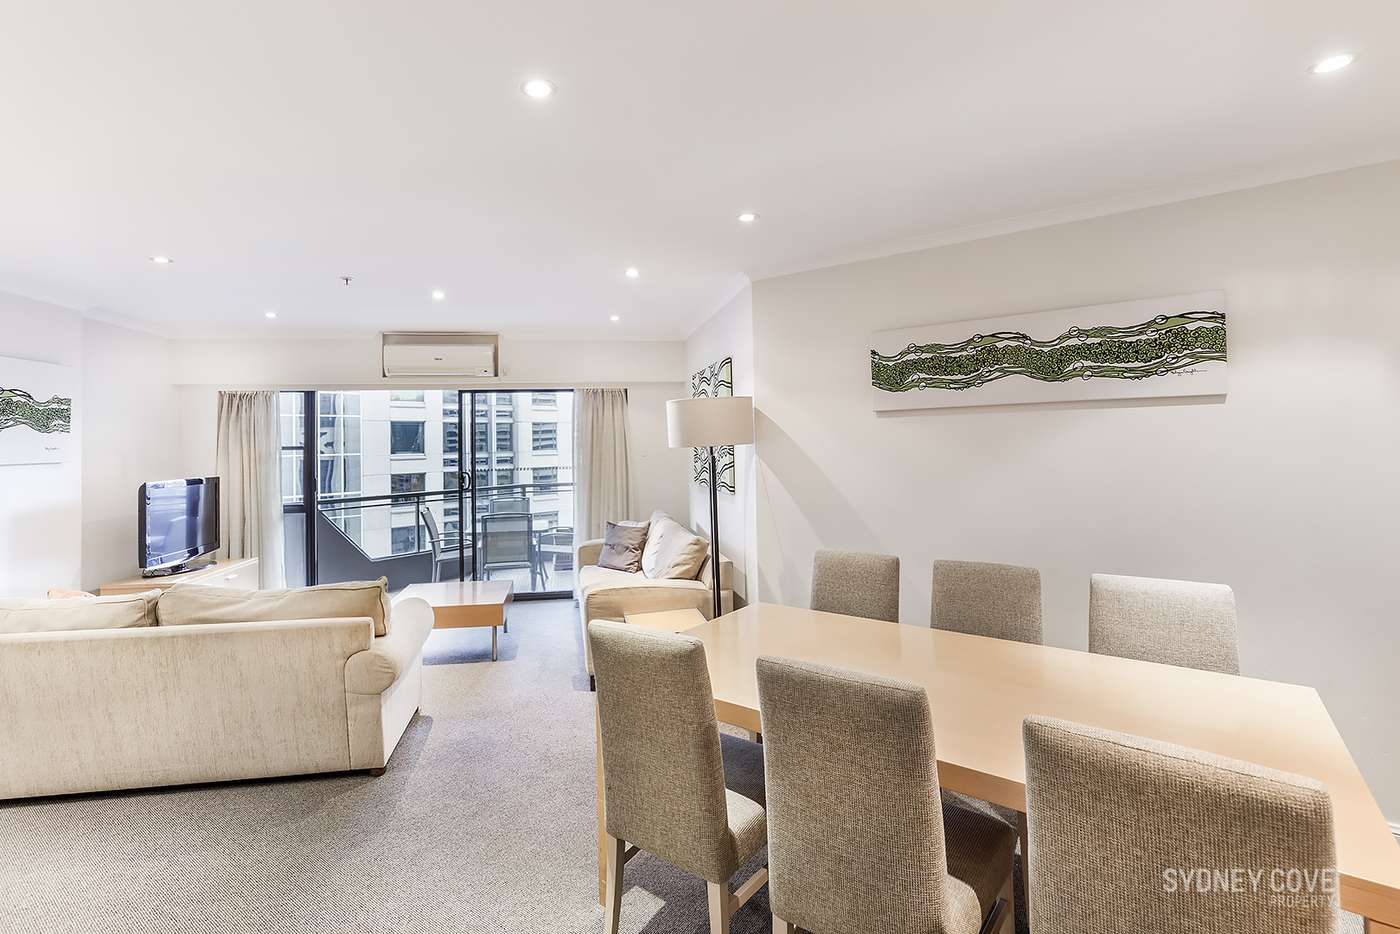 Main view of Homely apartment listing, 5 York St, Sydney NSW 2000